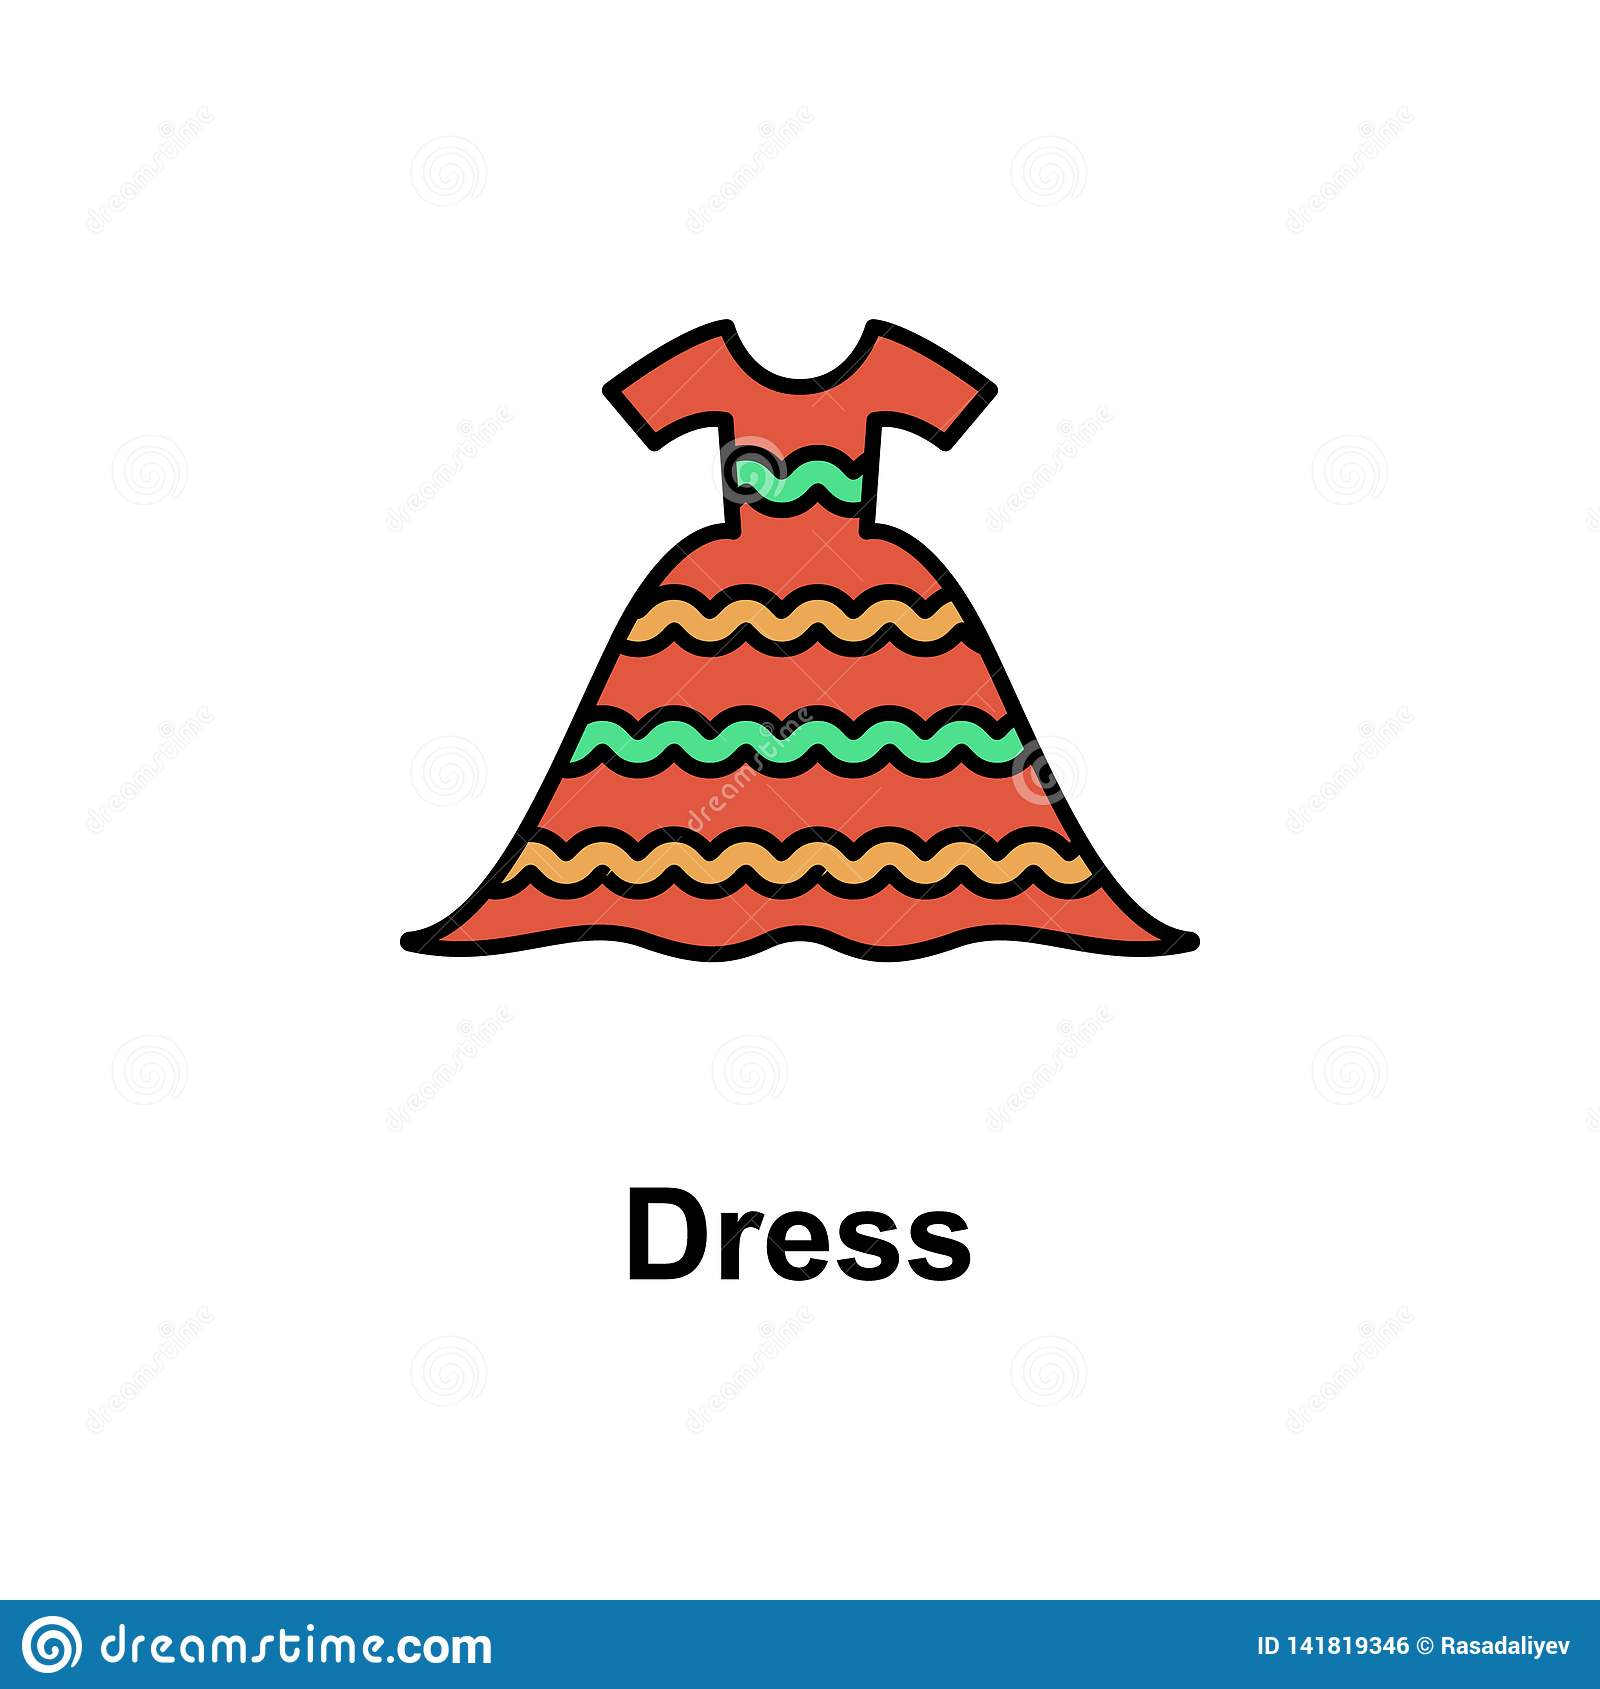 bc9eb1fcf Dress, wear icon. Element of Cinco de Mayo color icon. Premium quality  graphic design icon. Signs and symbols collection icon for websites, web  design, ...